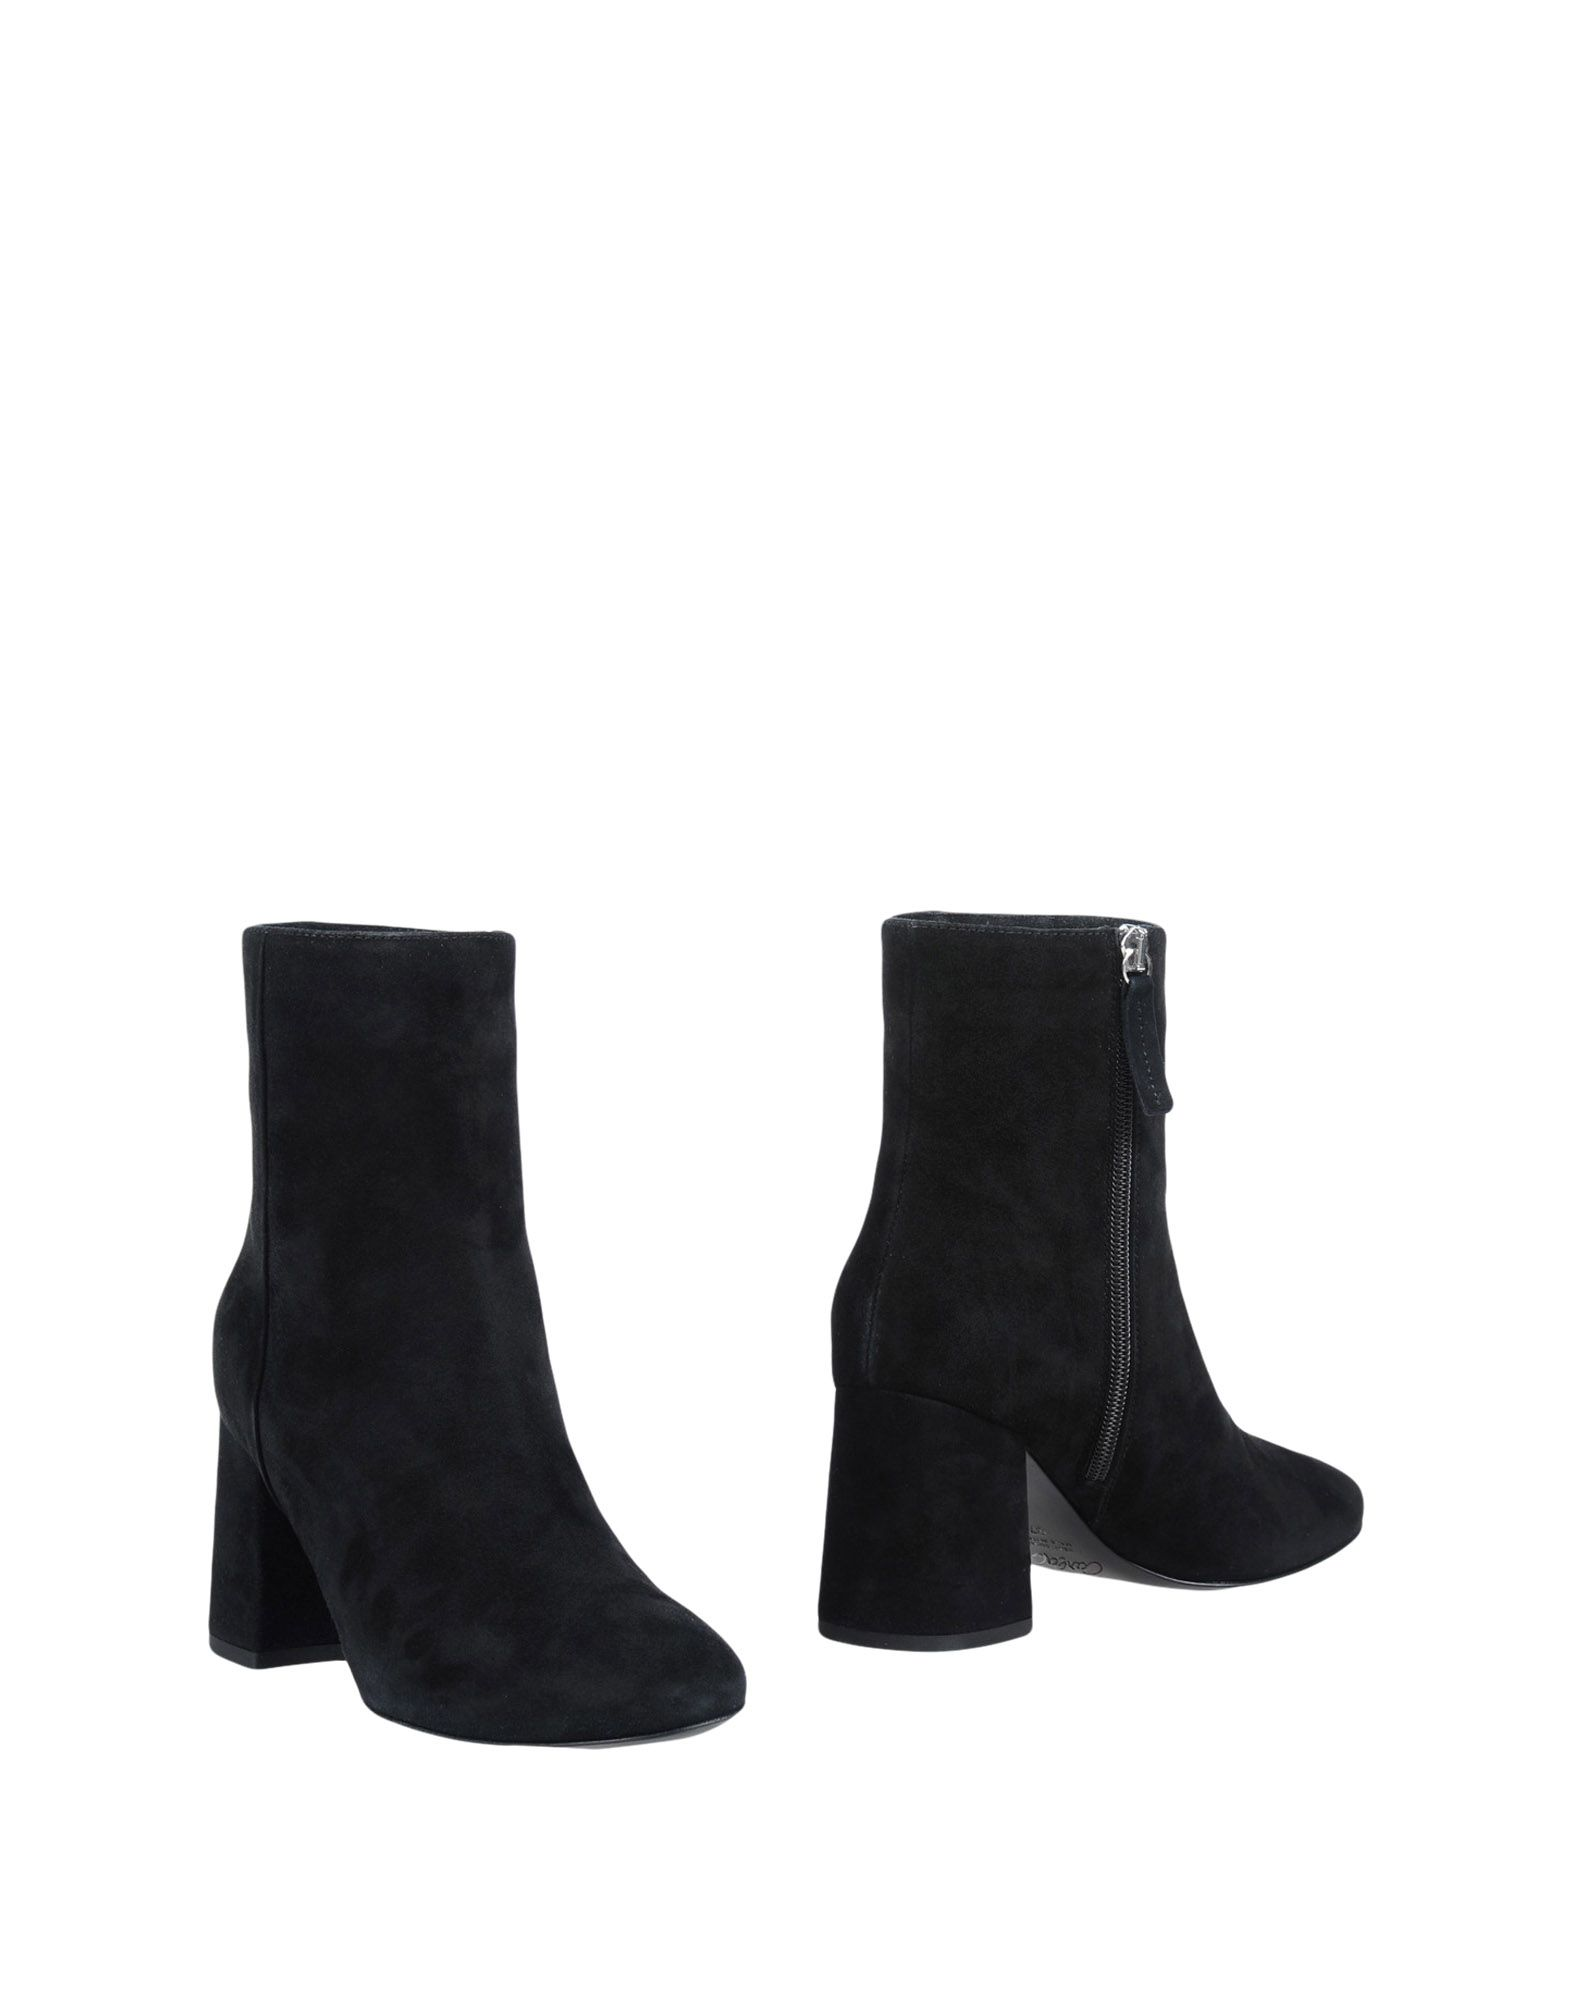 Bottine Carla G. Femme - Bottines Carla G. sur